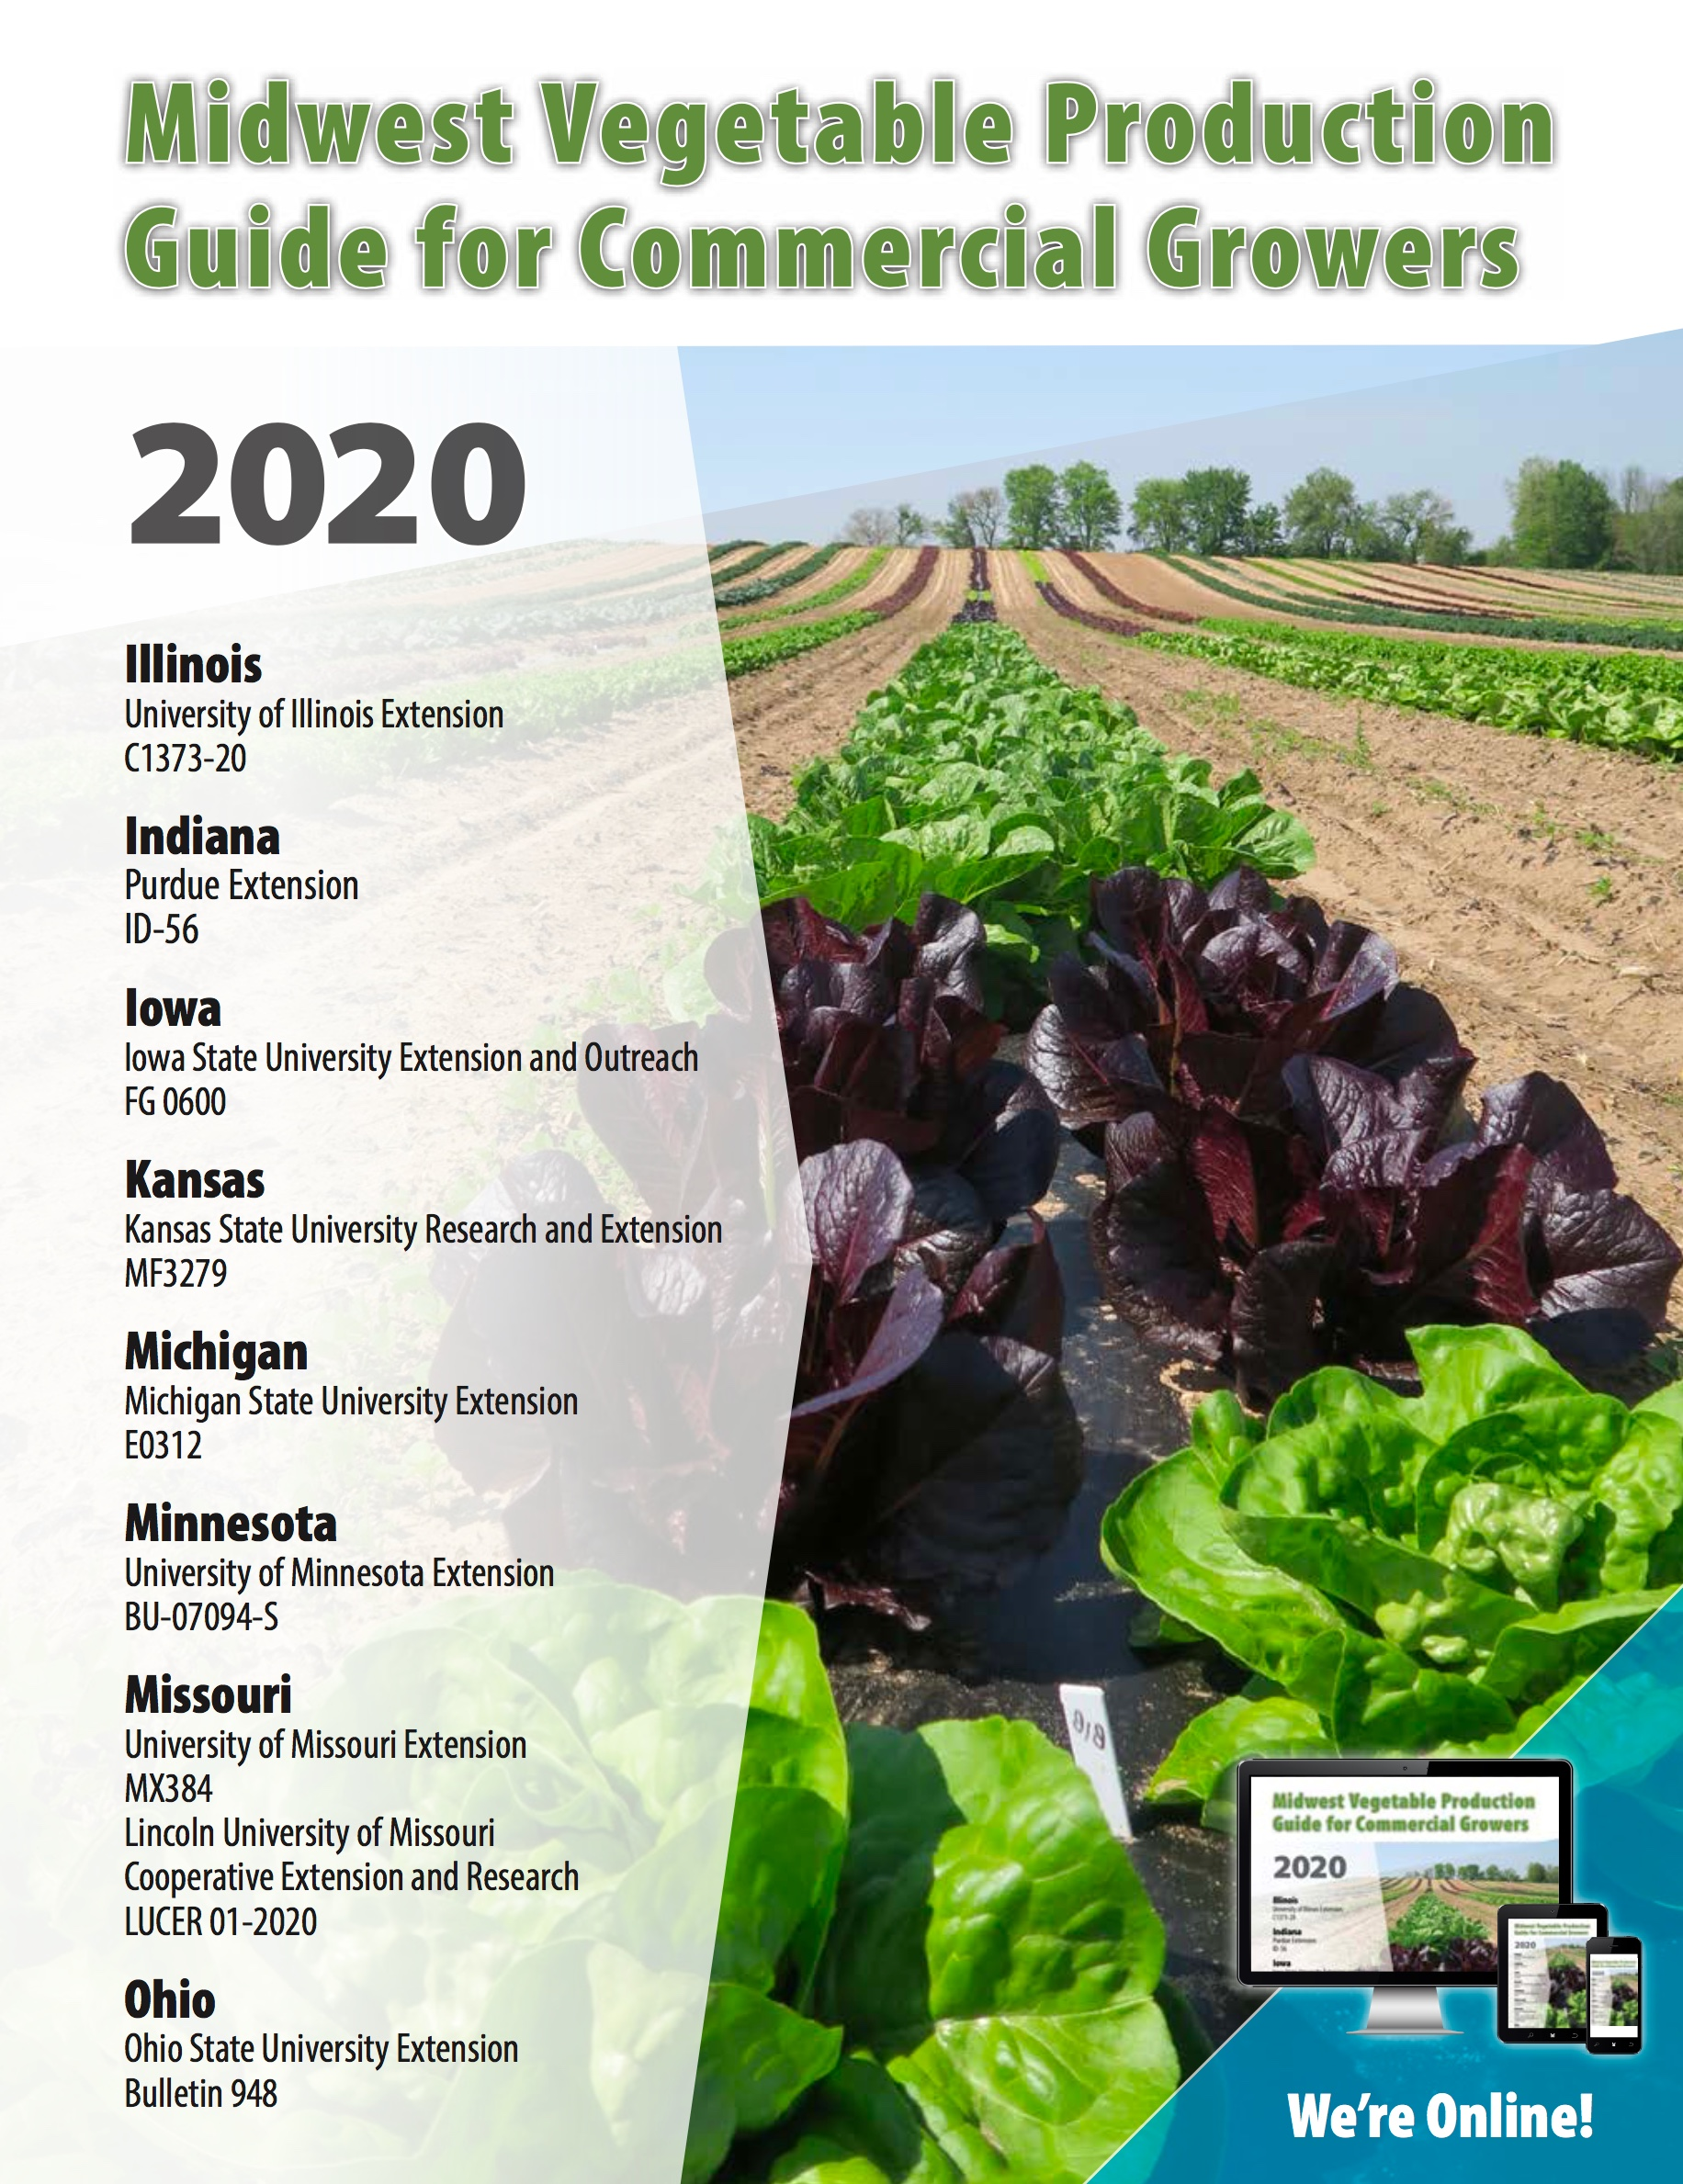 Midwest Vegetable Production Guide for Commercial Growers 2020